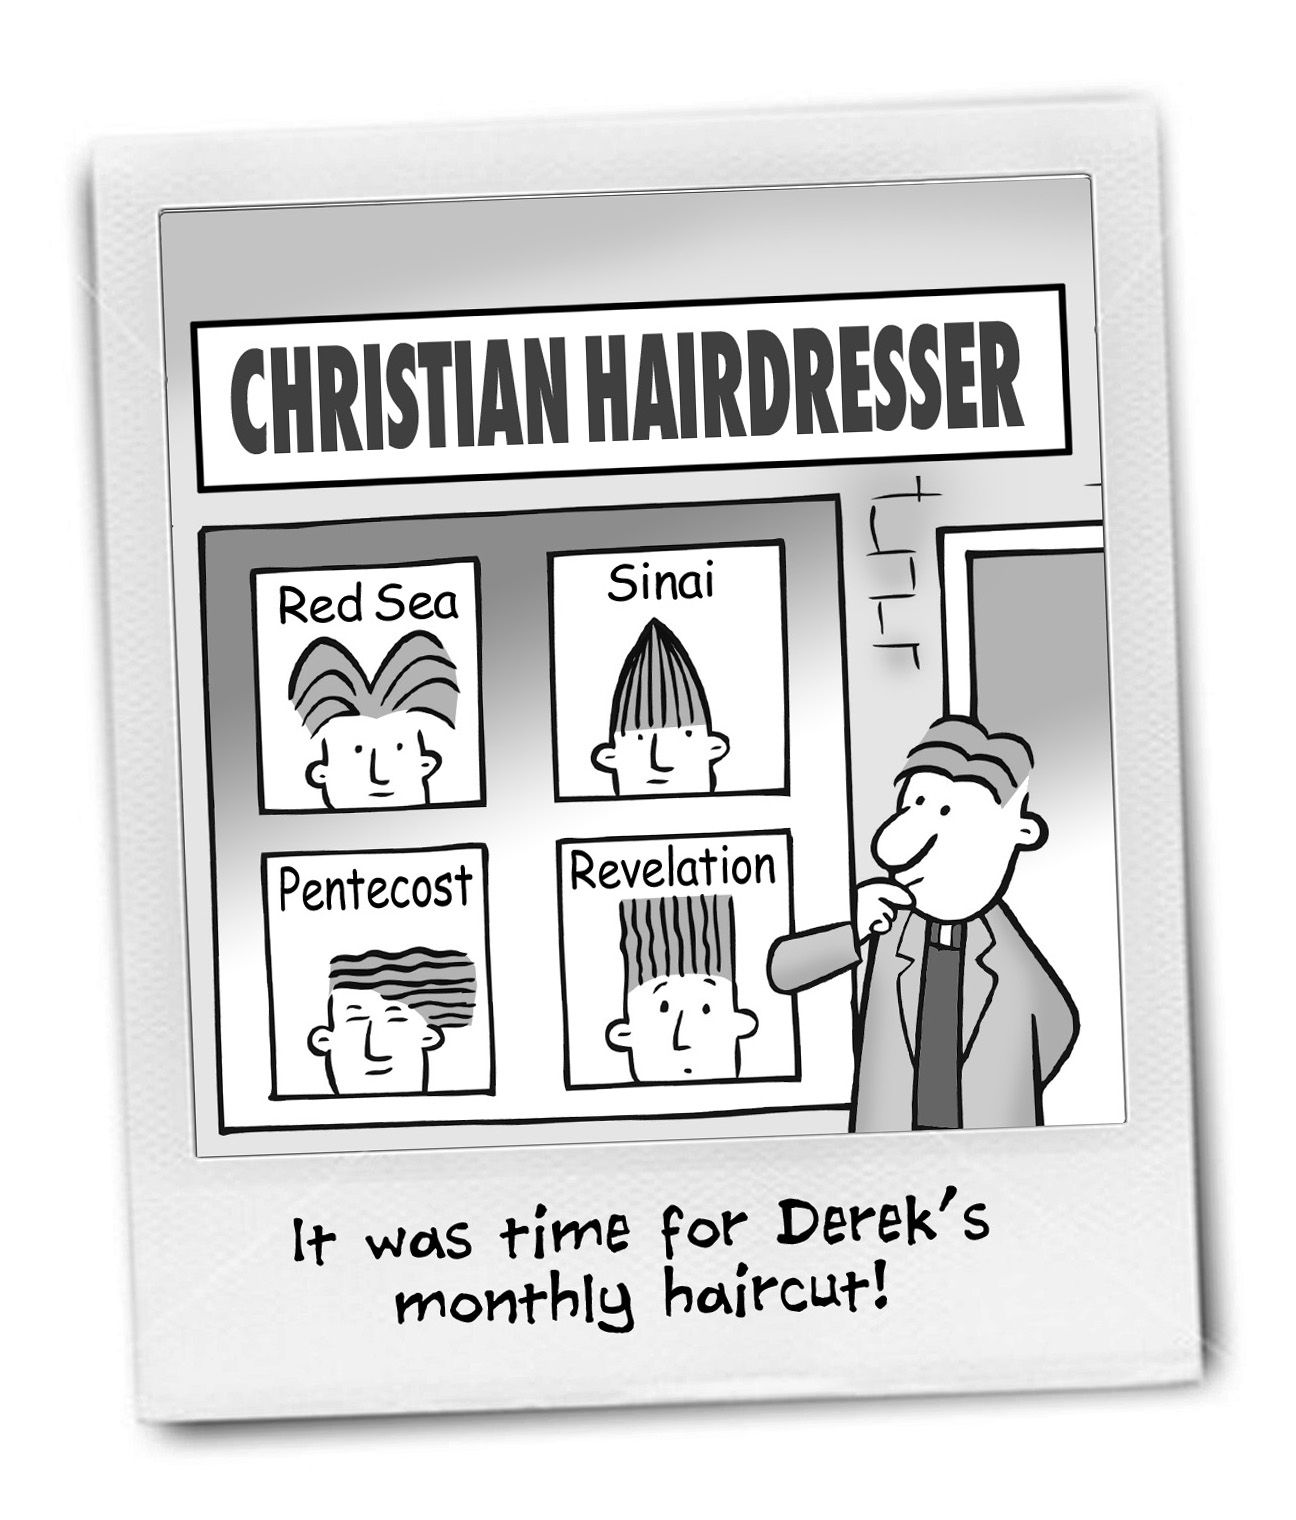 Humor Inspirational Quotes: Funny Hairdresser Quotes And Sayings. QuotesGram